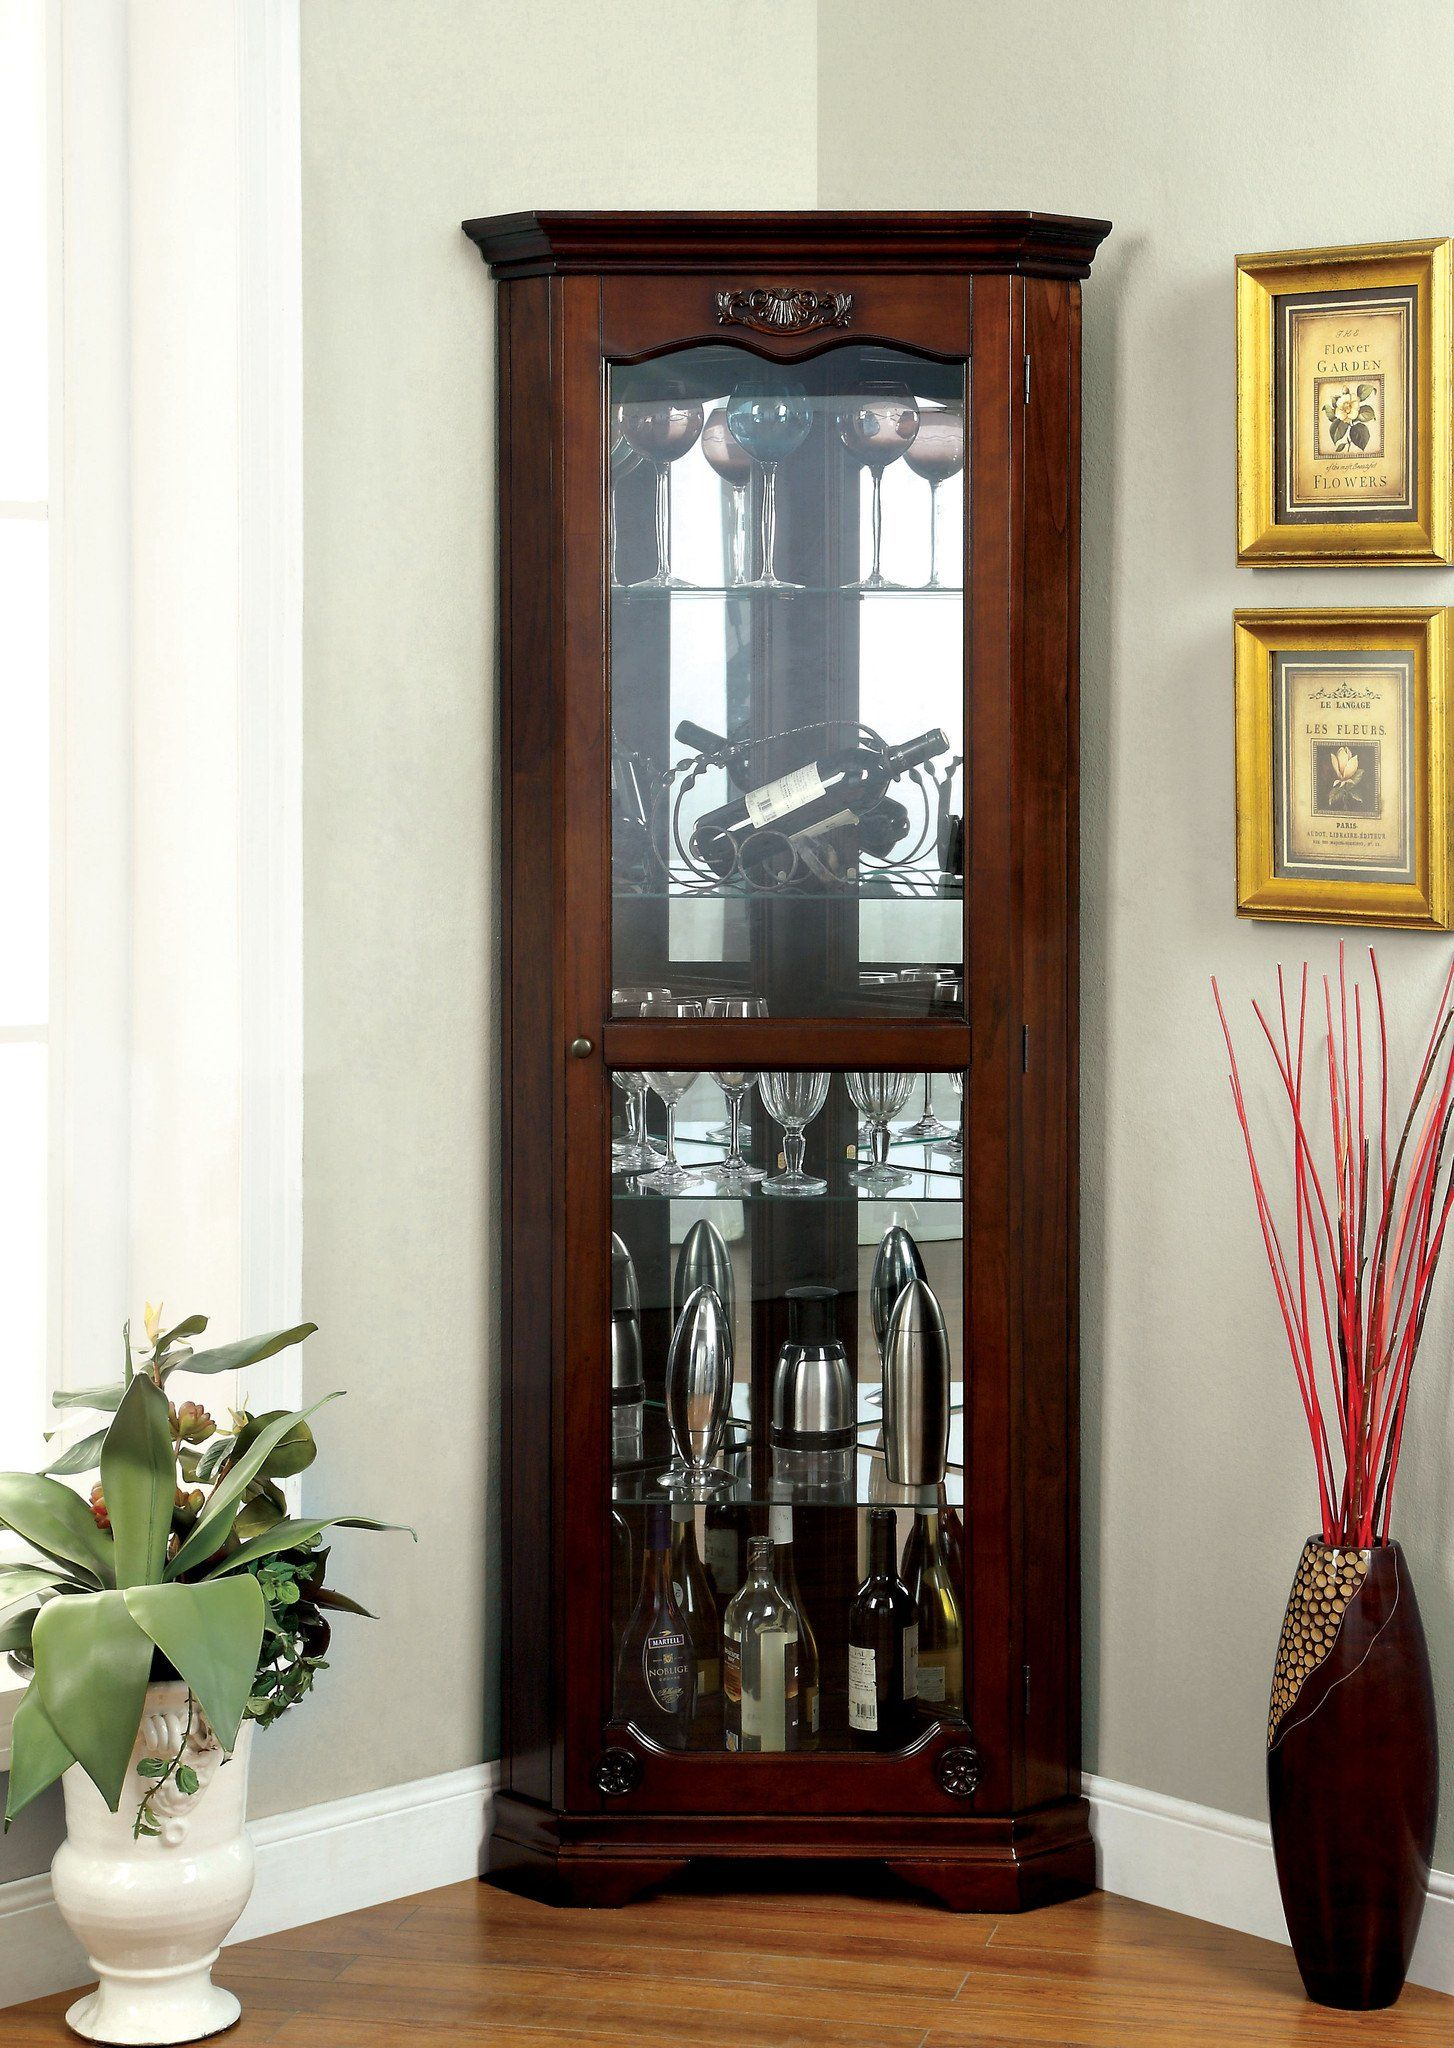 Enitial Lab Jovian Traditional Curio Cabinet in Walnut Finish